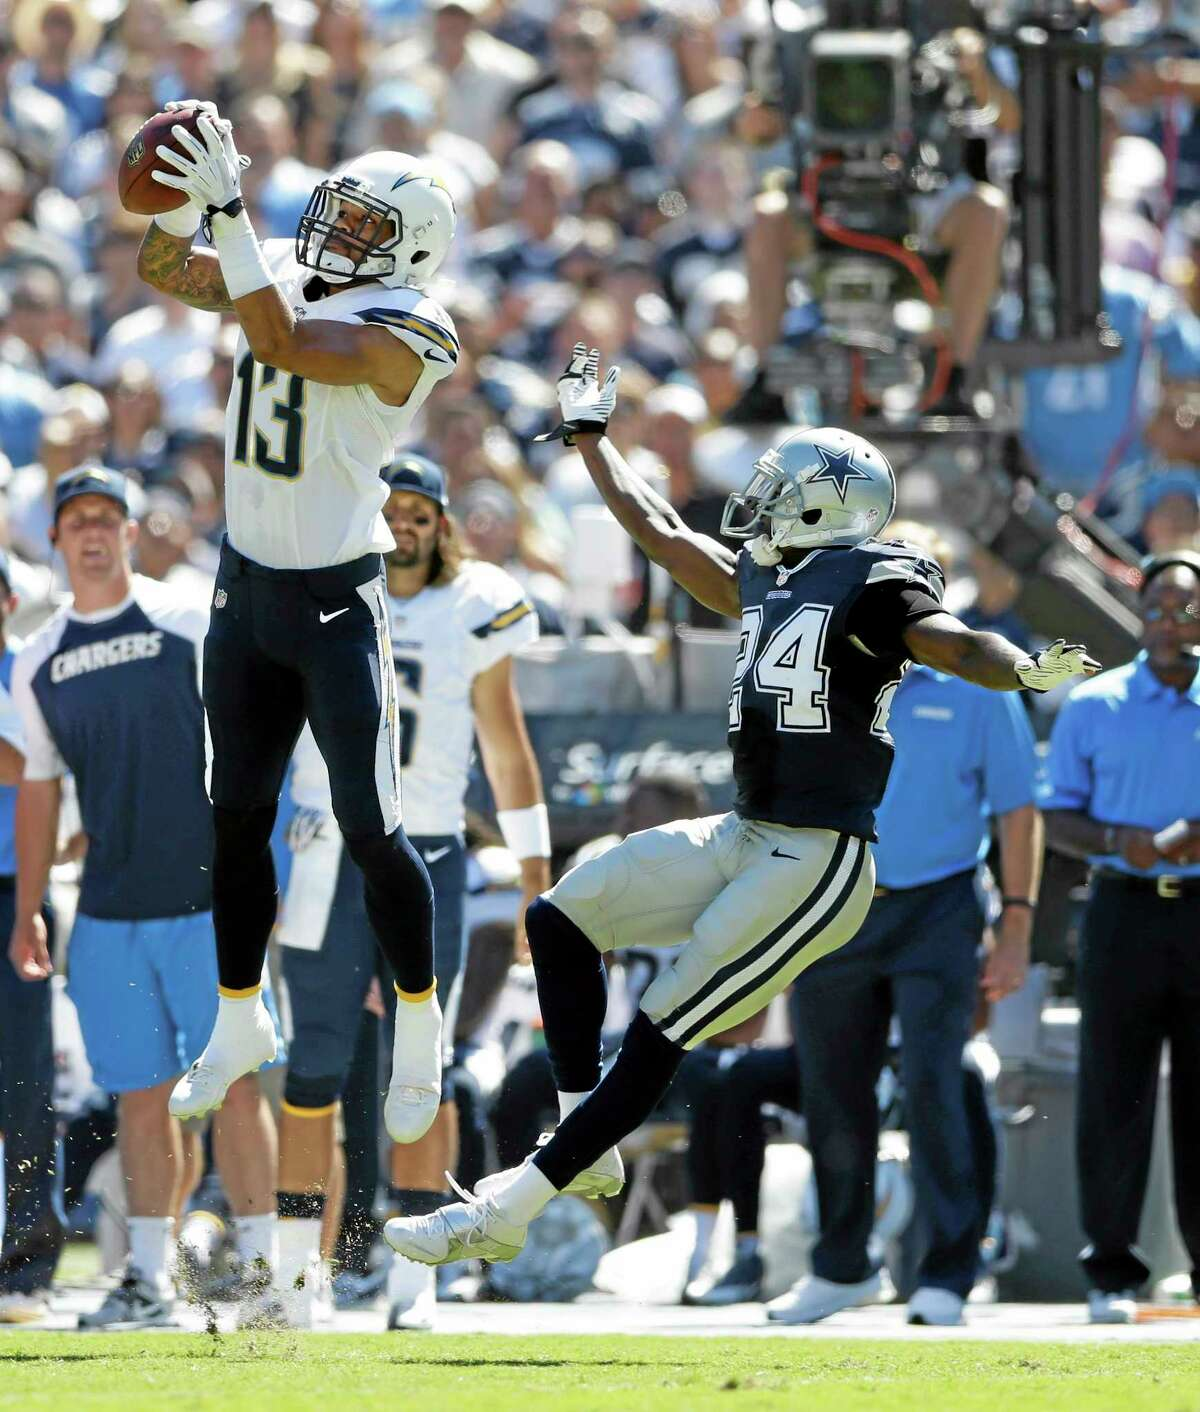 San Diego Chargers wide receiver Keenan Allen catches a pass in front of Dallas Cowboys cornerback Morris Claiborne on Sept. 29 in San Diego.